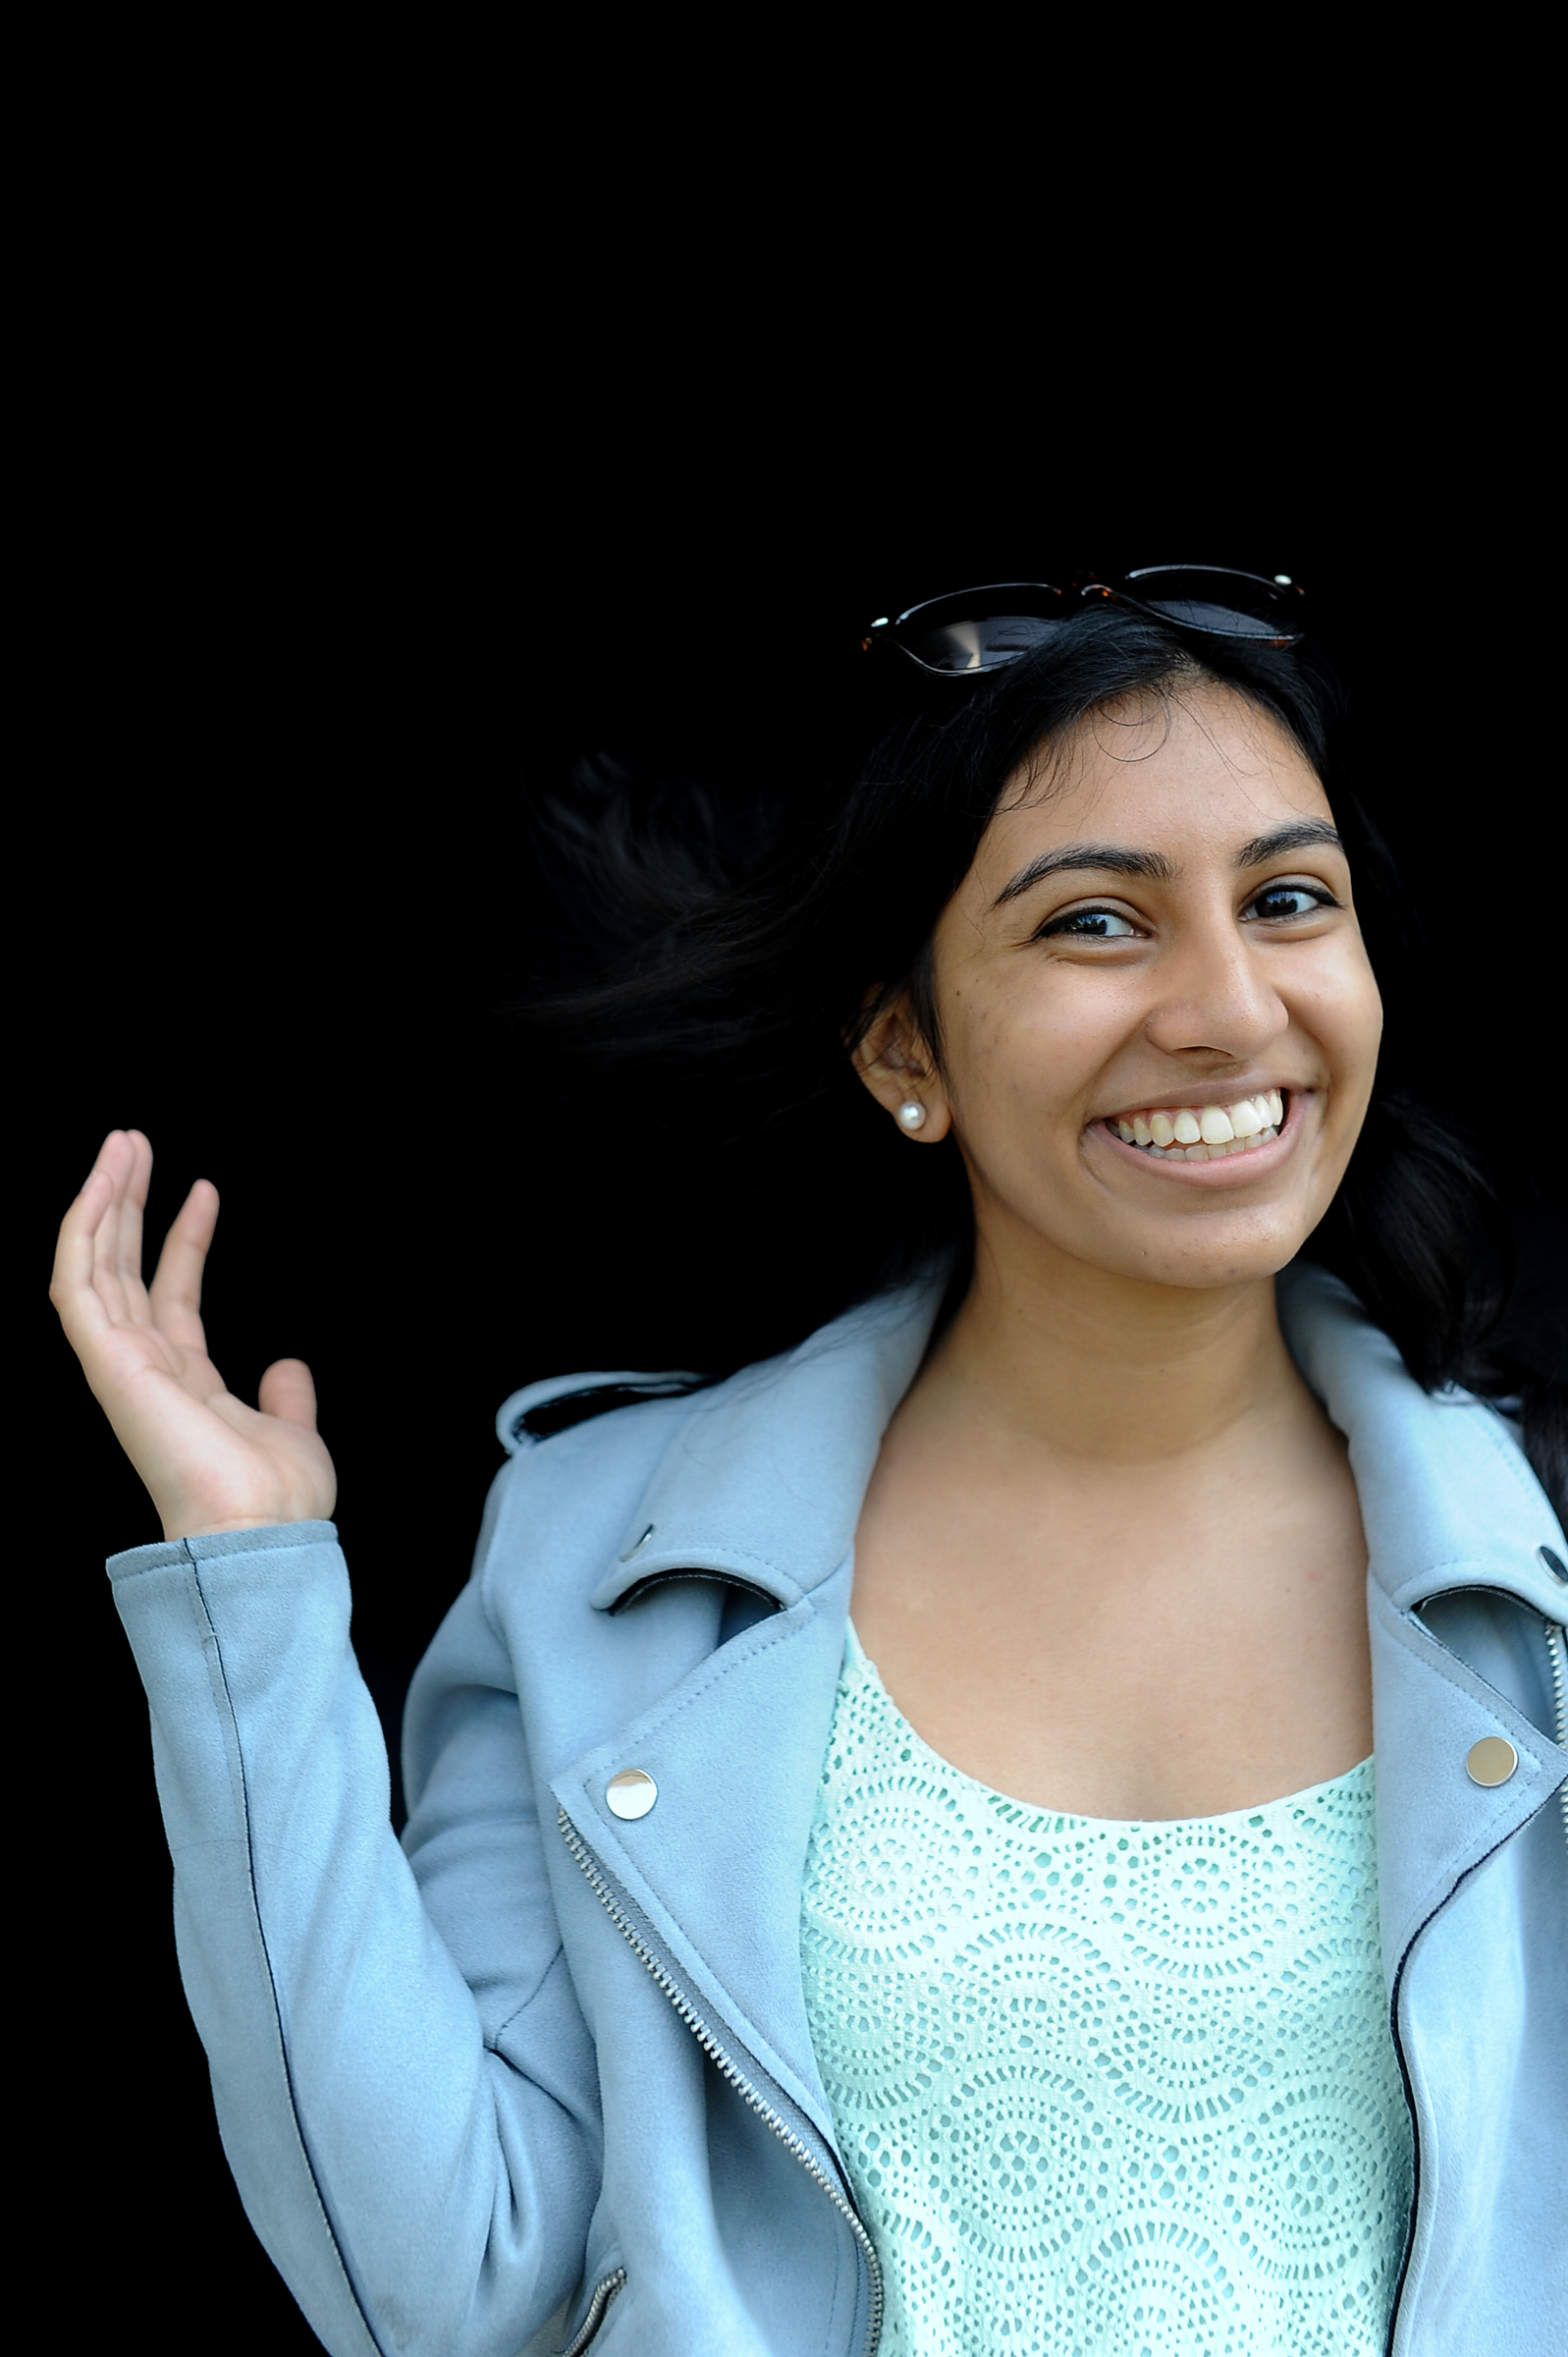 Name: Yashvi Gattani